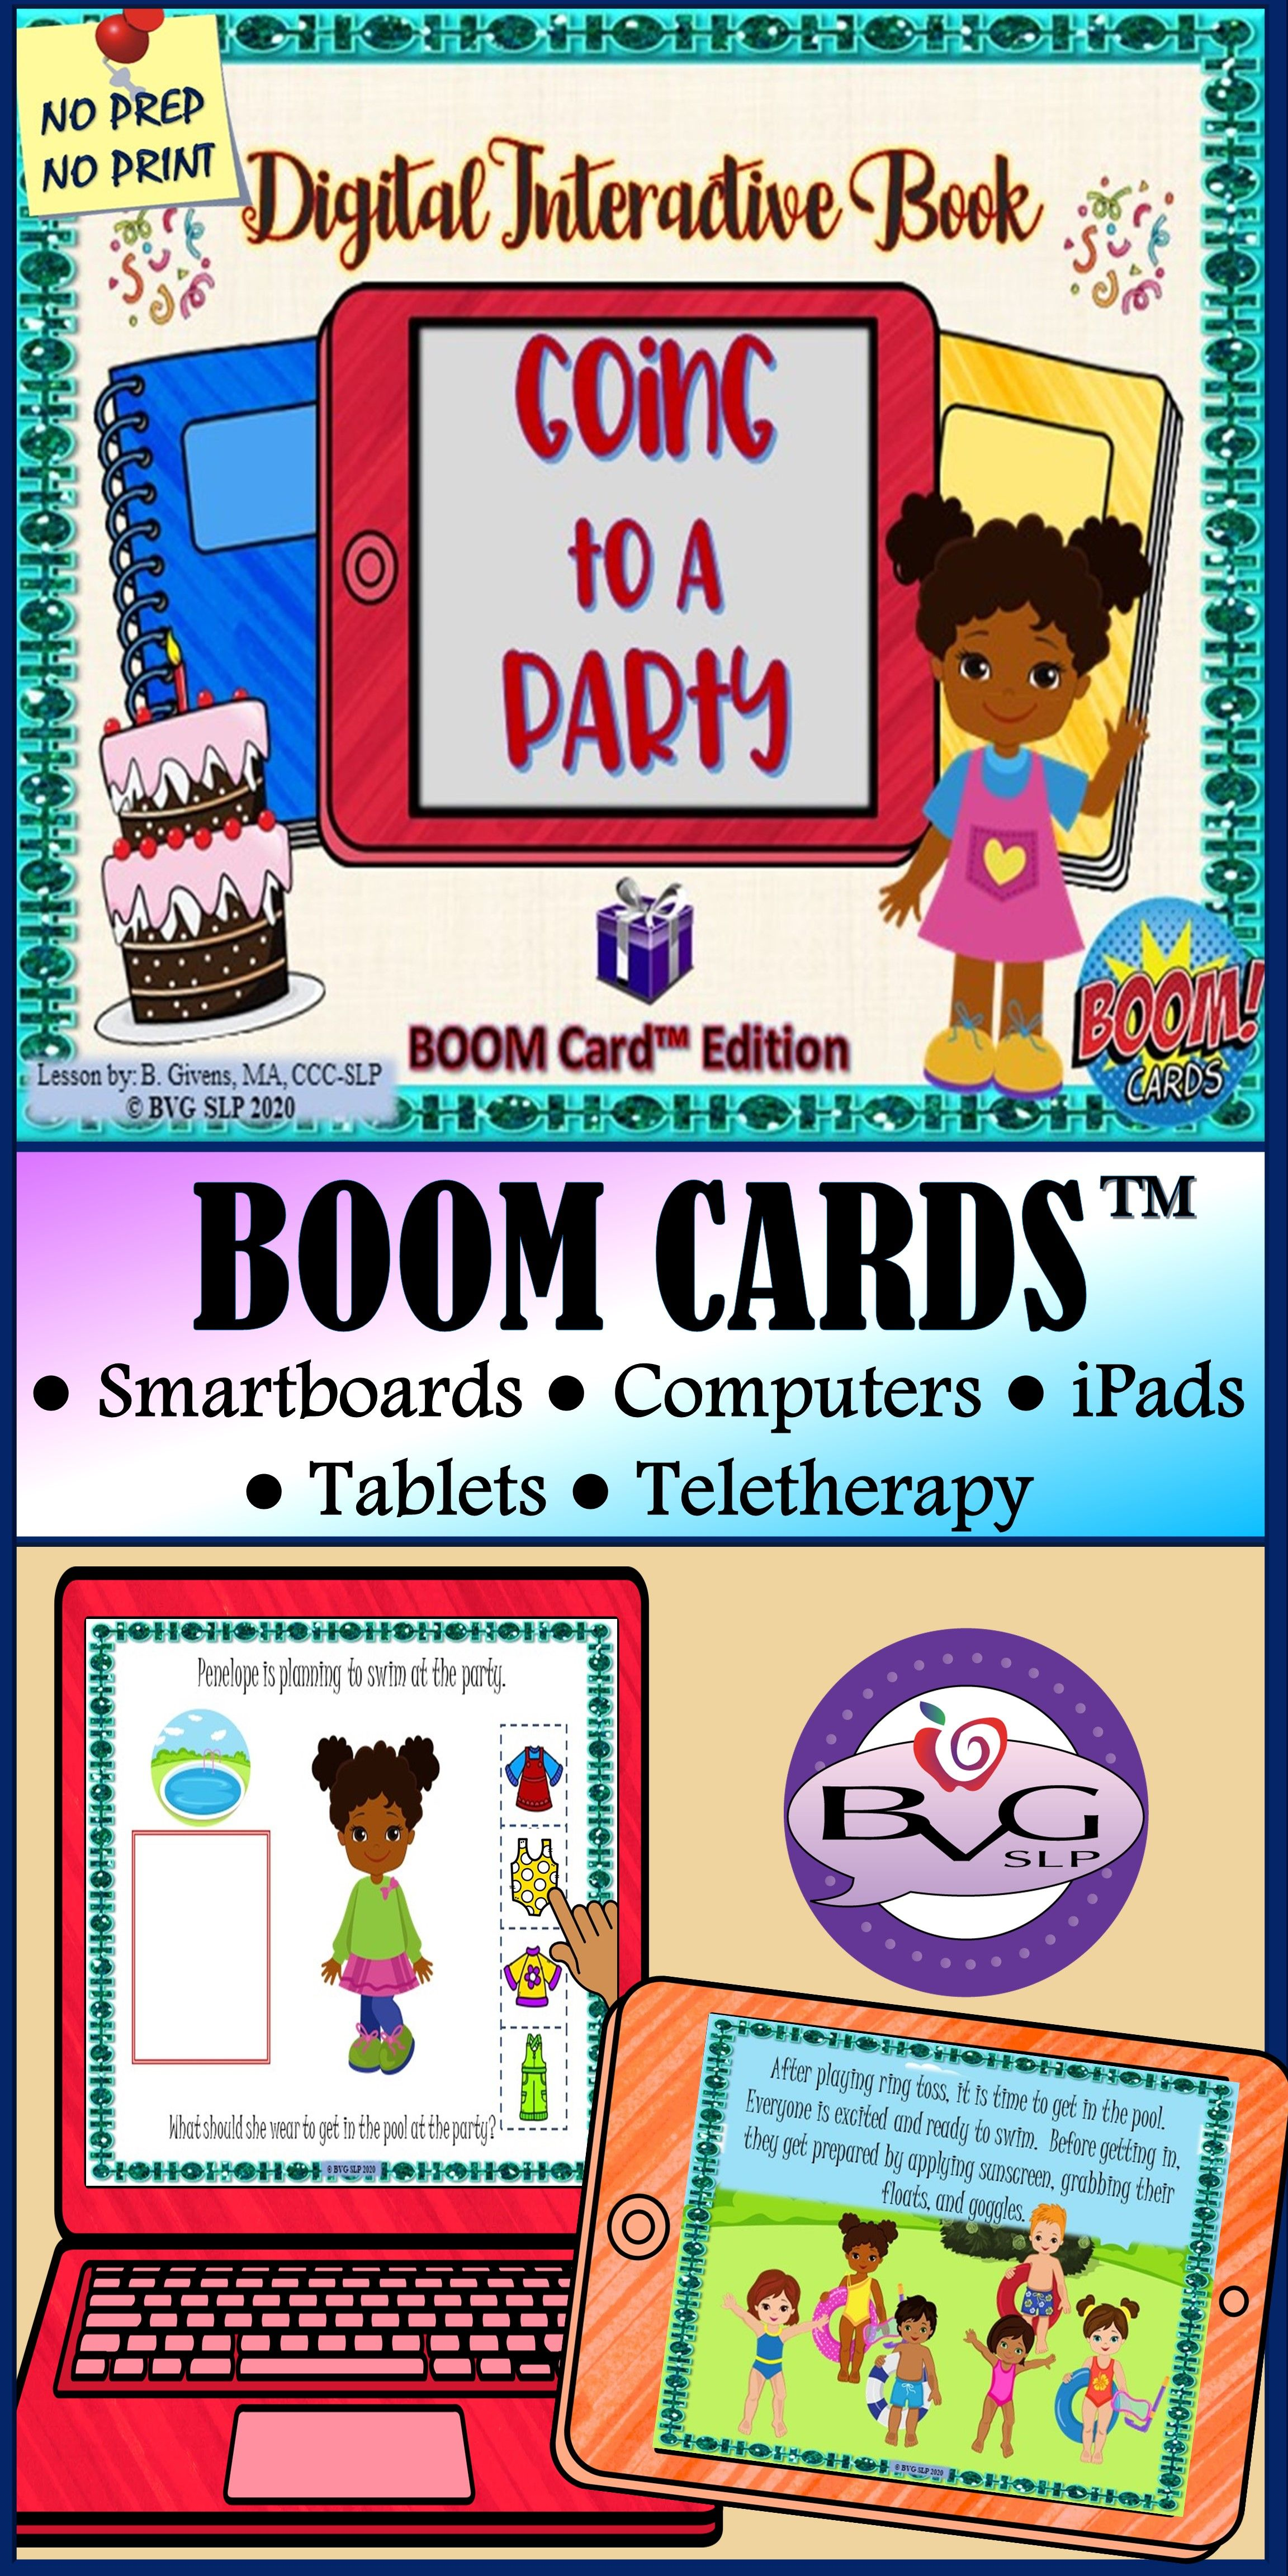 BOOM CARDS Distance Learning Interactive Book Series Going to Party Teletherapy